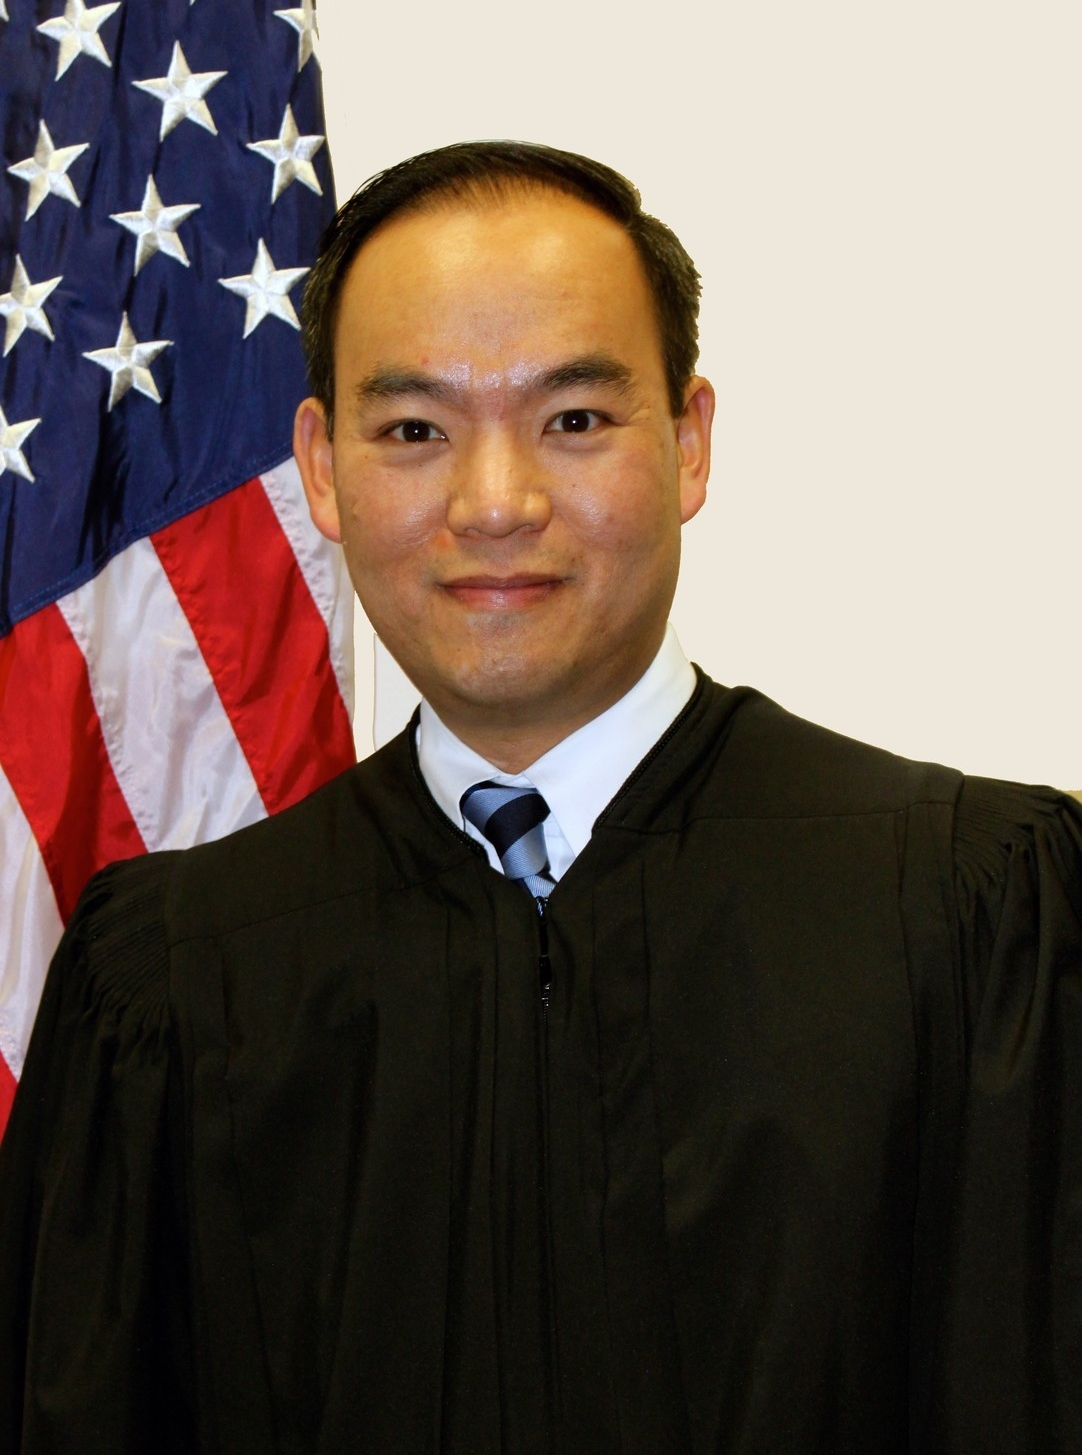 bal-who-is-the-maryland-judge-in-the-trump-travel-ban-ruling-20170316.jpg